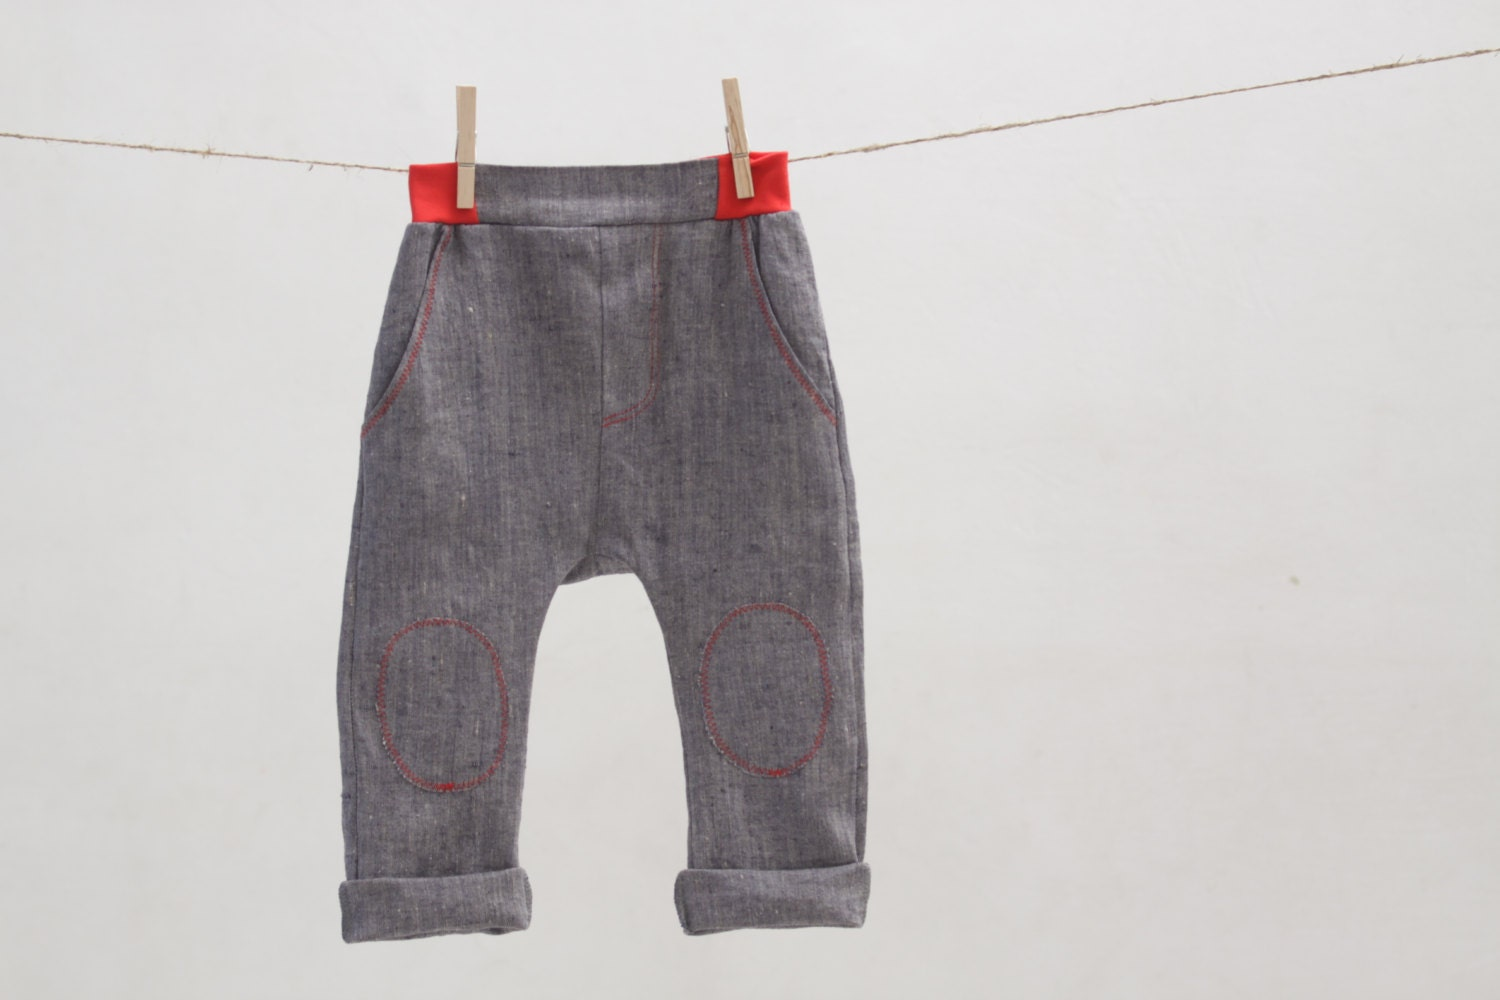 Browse the selection of linen pants at gravitybox.ga and receive free shipping. Skip to top navigation Skip to shopping bag Skip to main content Skip to footer links. Baby Girls M. Baby Boys M. Baby Girls. Shop by Size. Baby Girls M. Baby Boys M. Baby Girls ; .